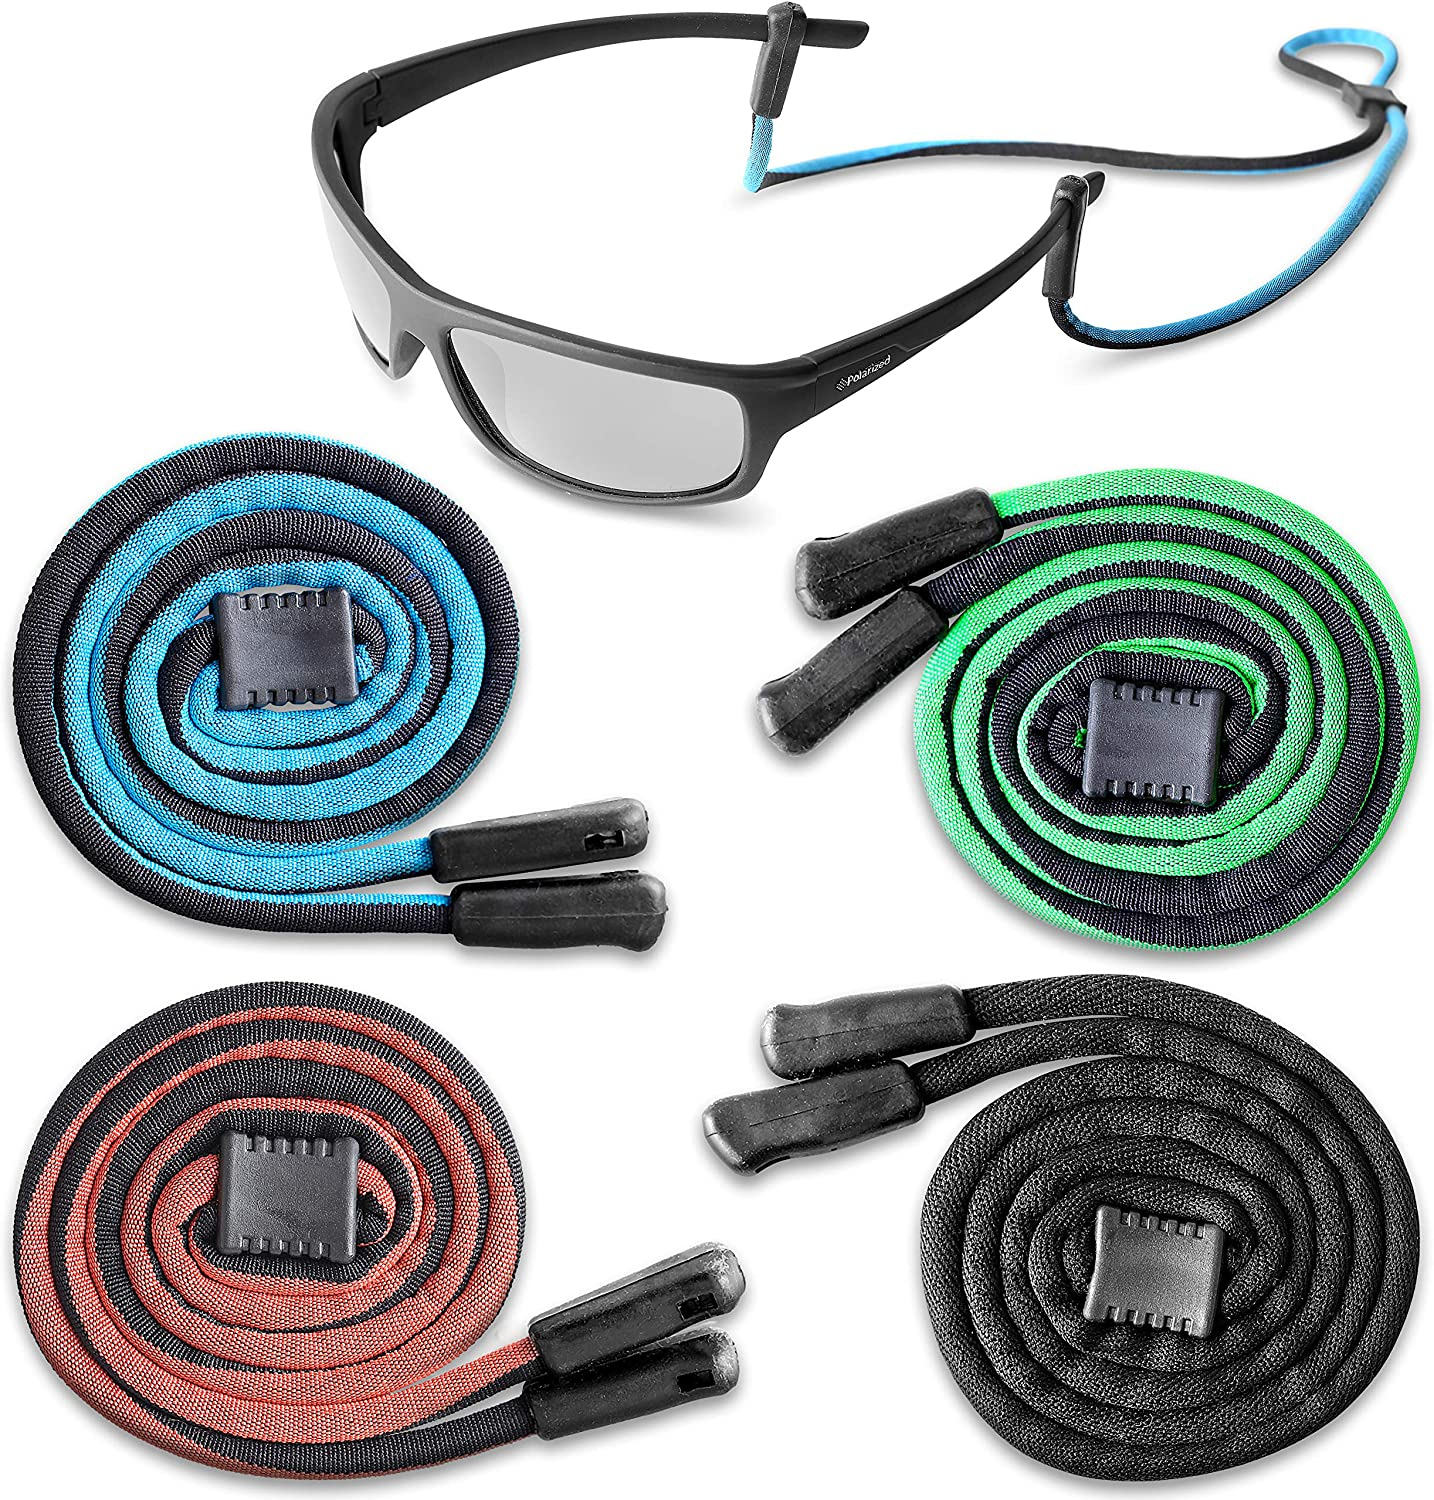 4 Pack Eyeglasses Straps Spectacles Holder Sunglass Chain Glasses Cords Strap with 4 Pair Anti-Slip Rings